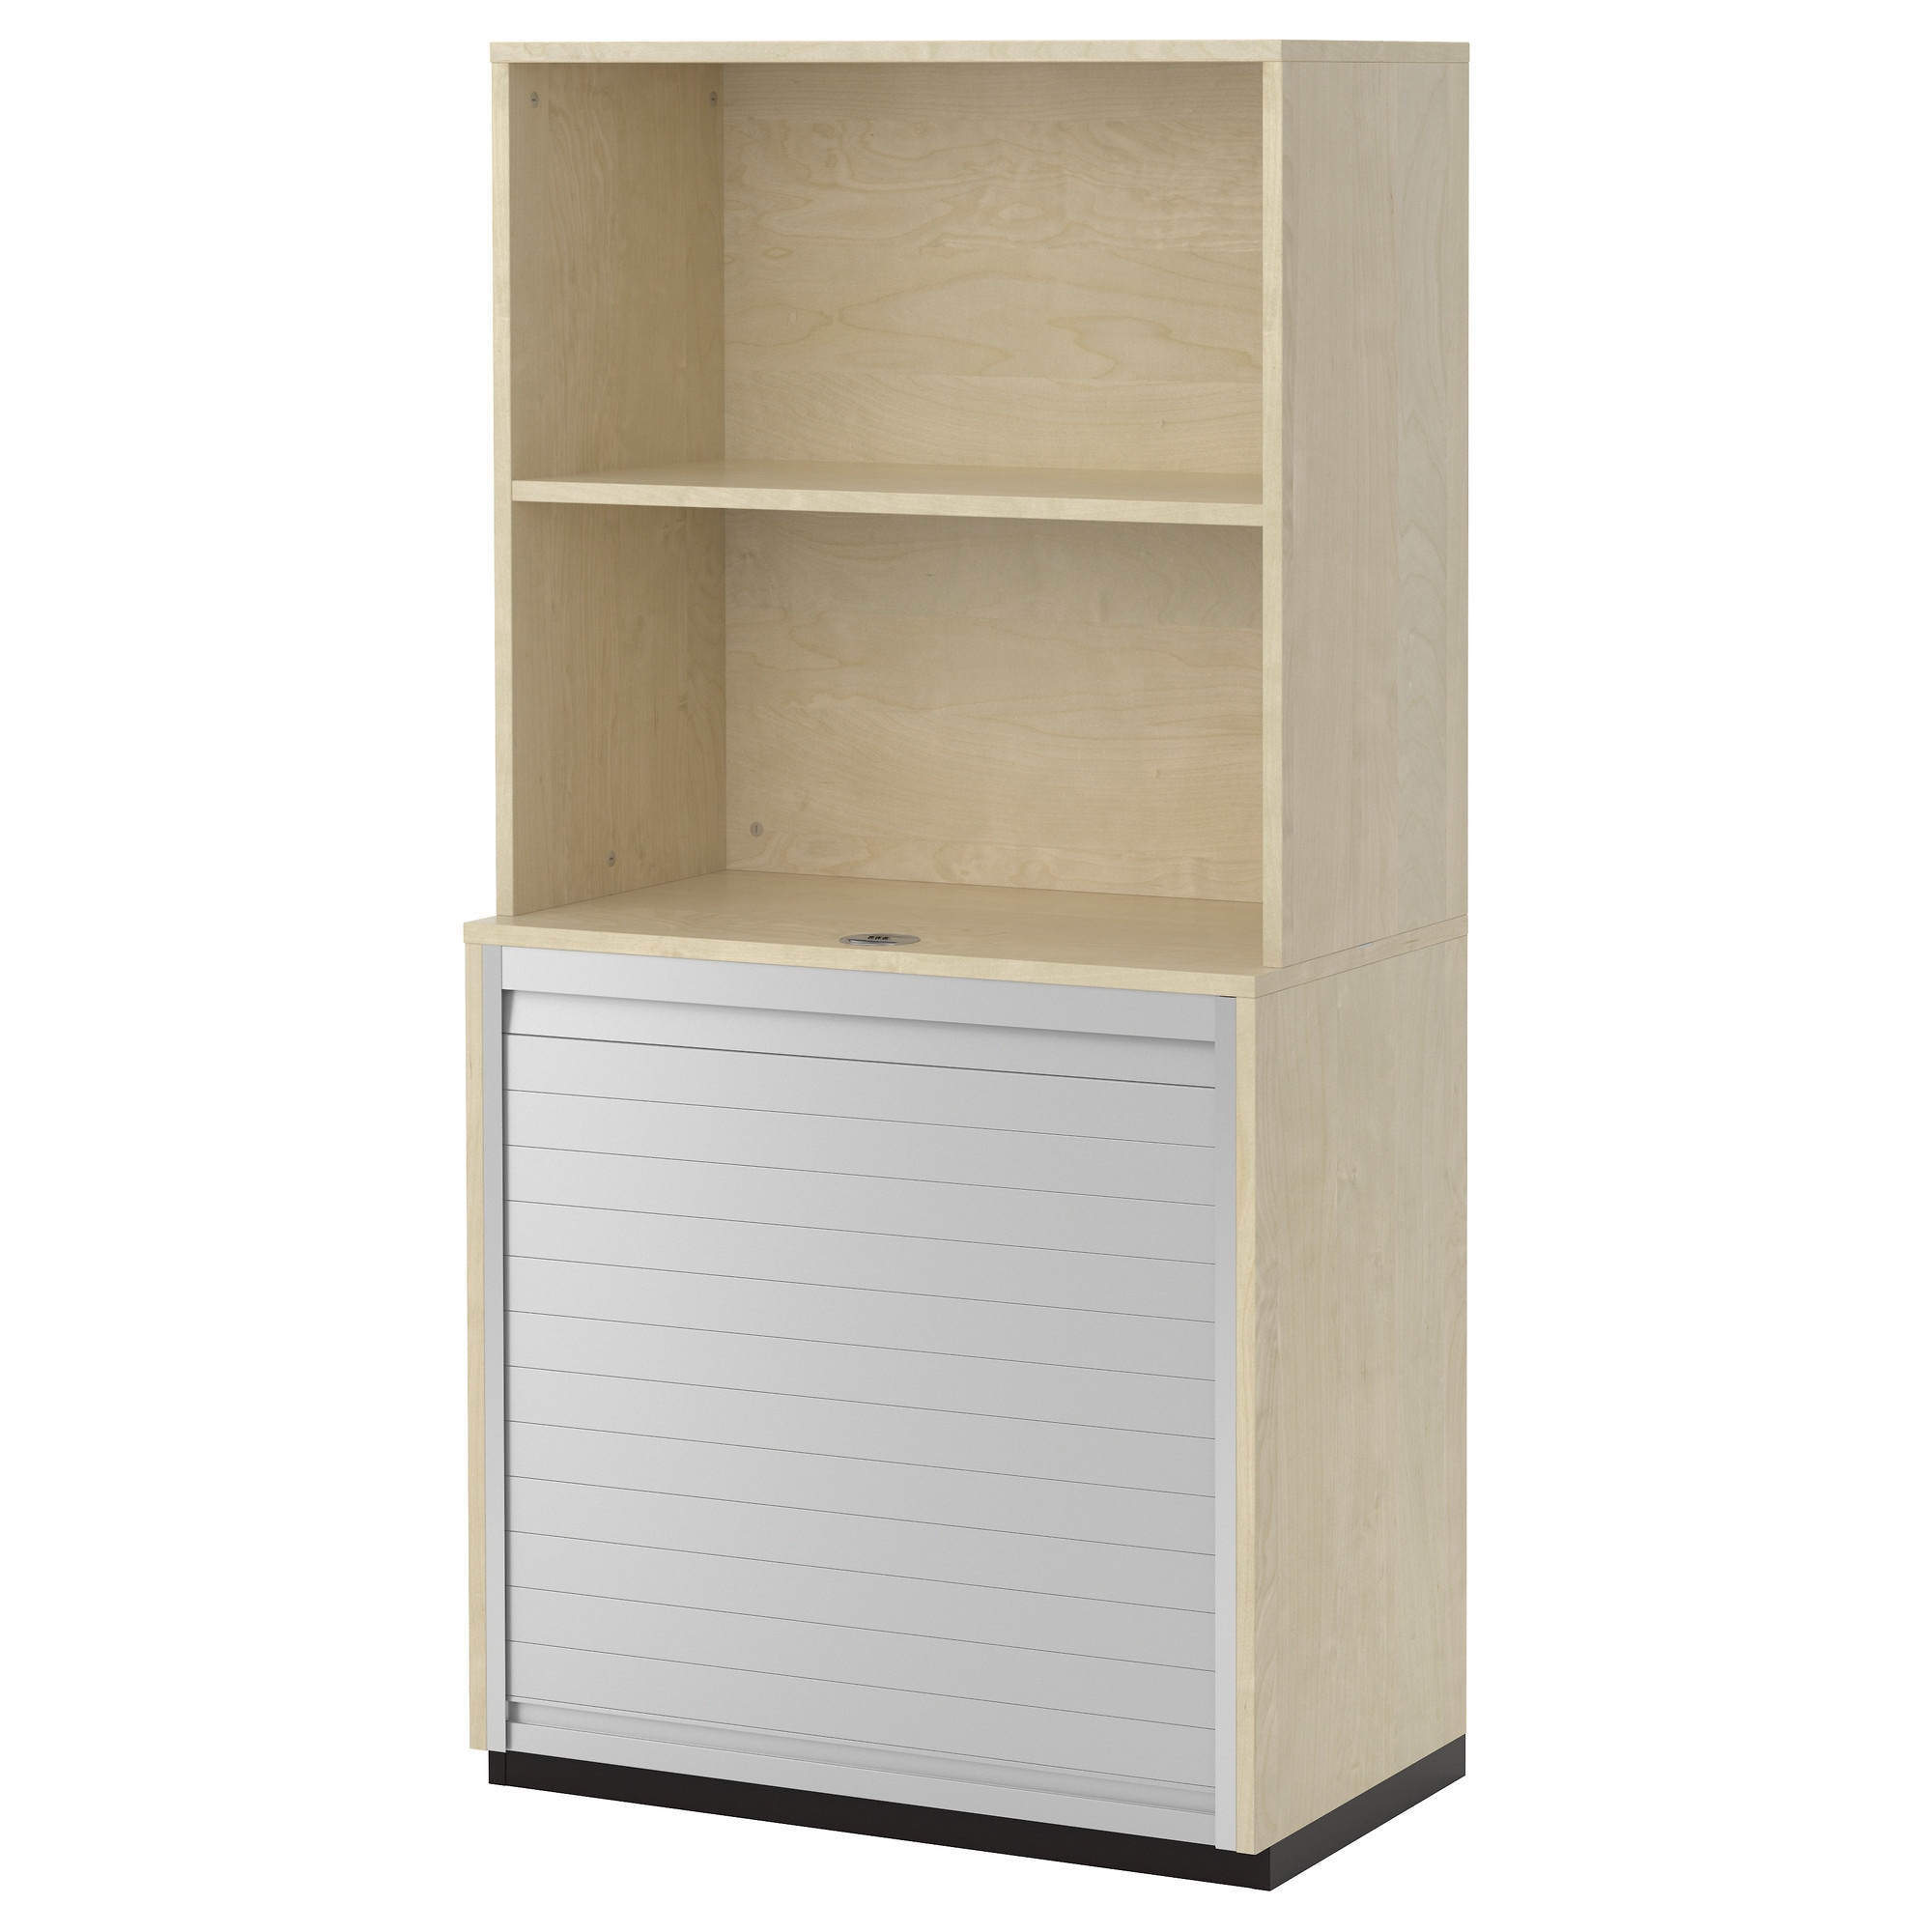 GALANT Storage Combination With Roll Front, Birch Veneer Width: 31 1/2